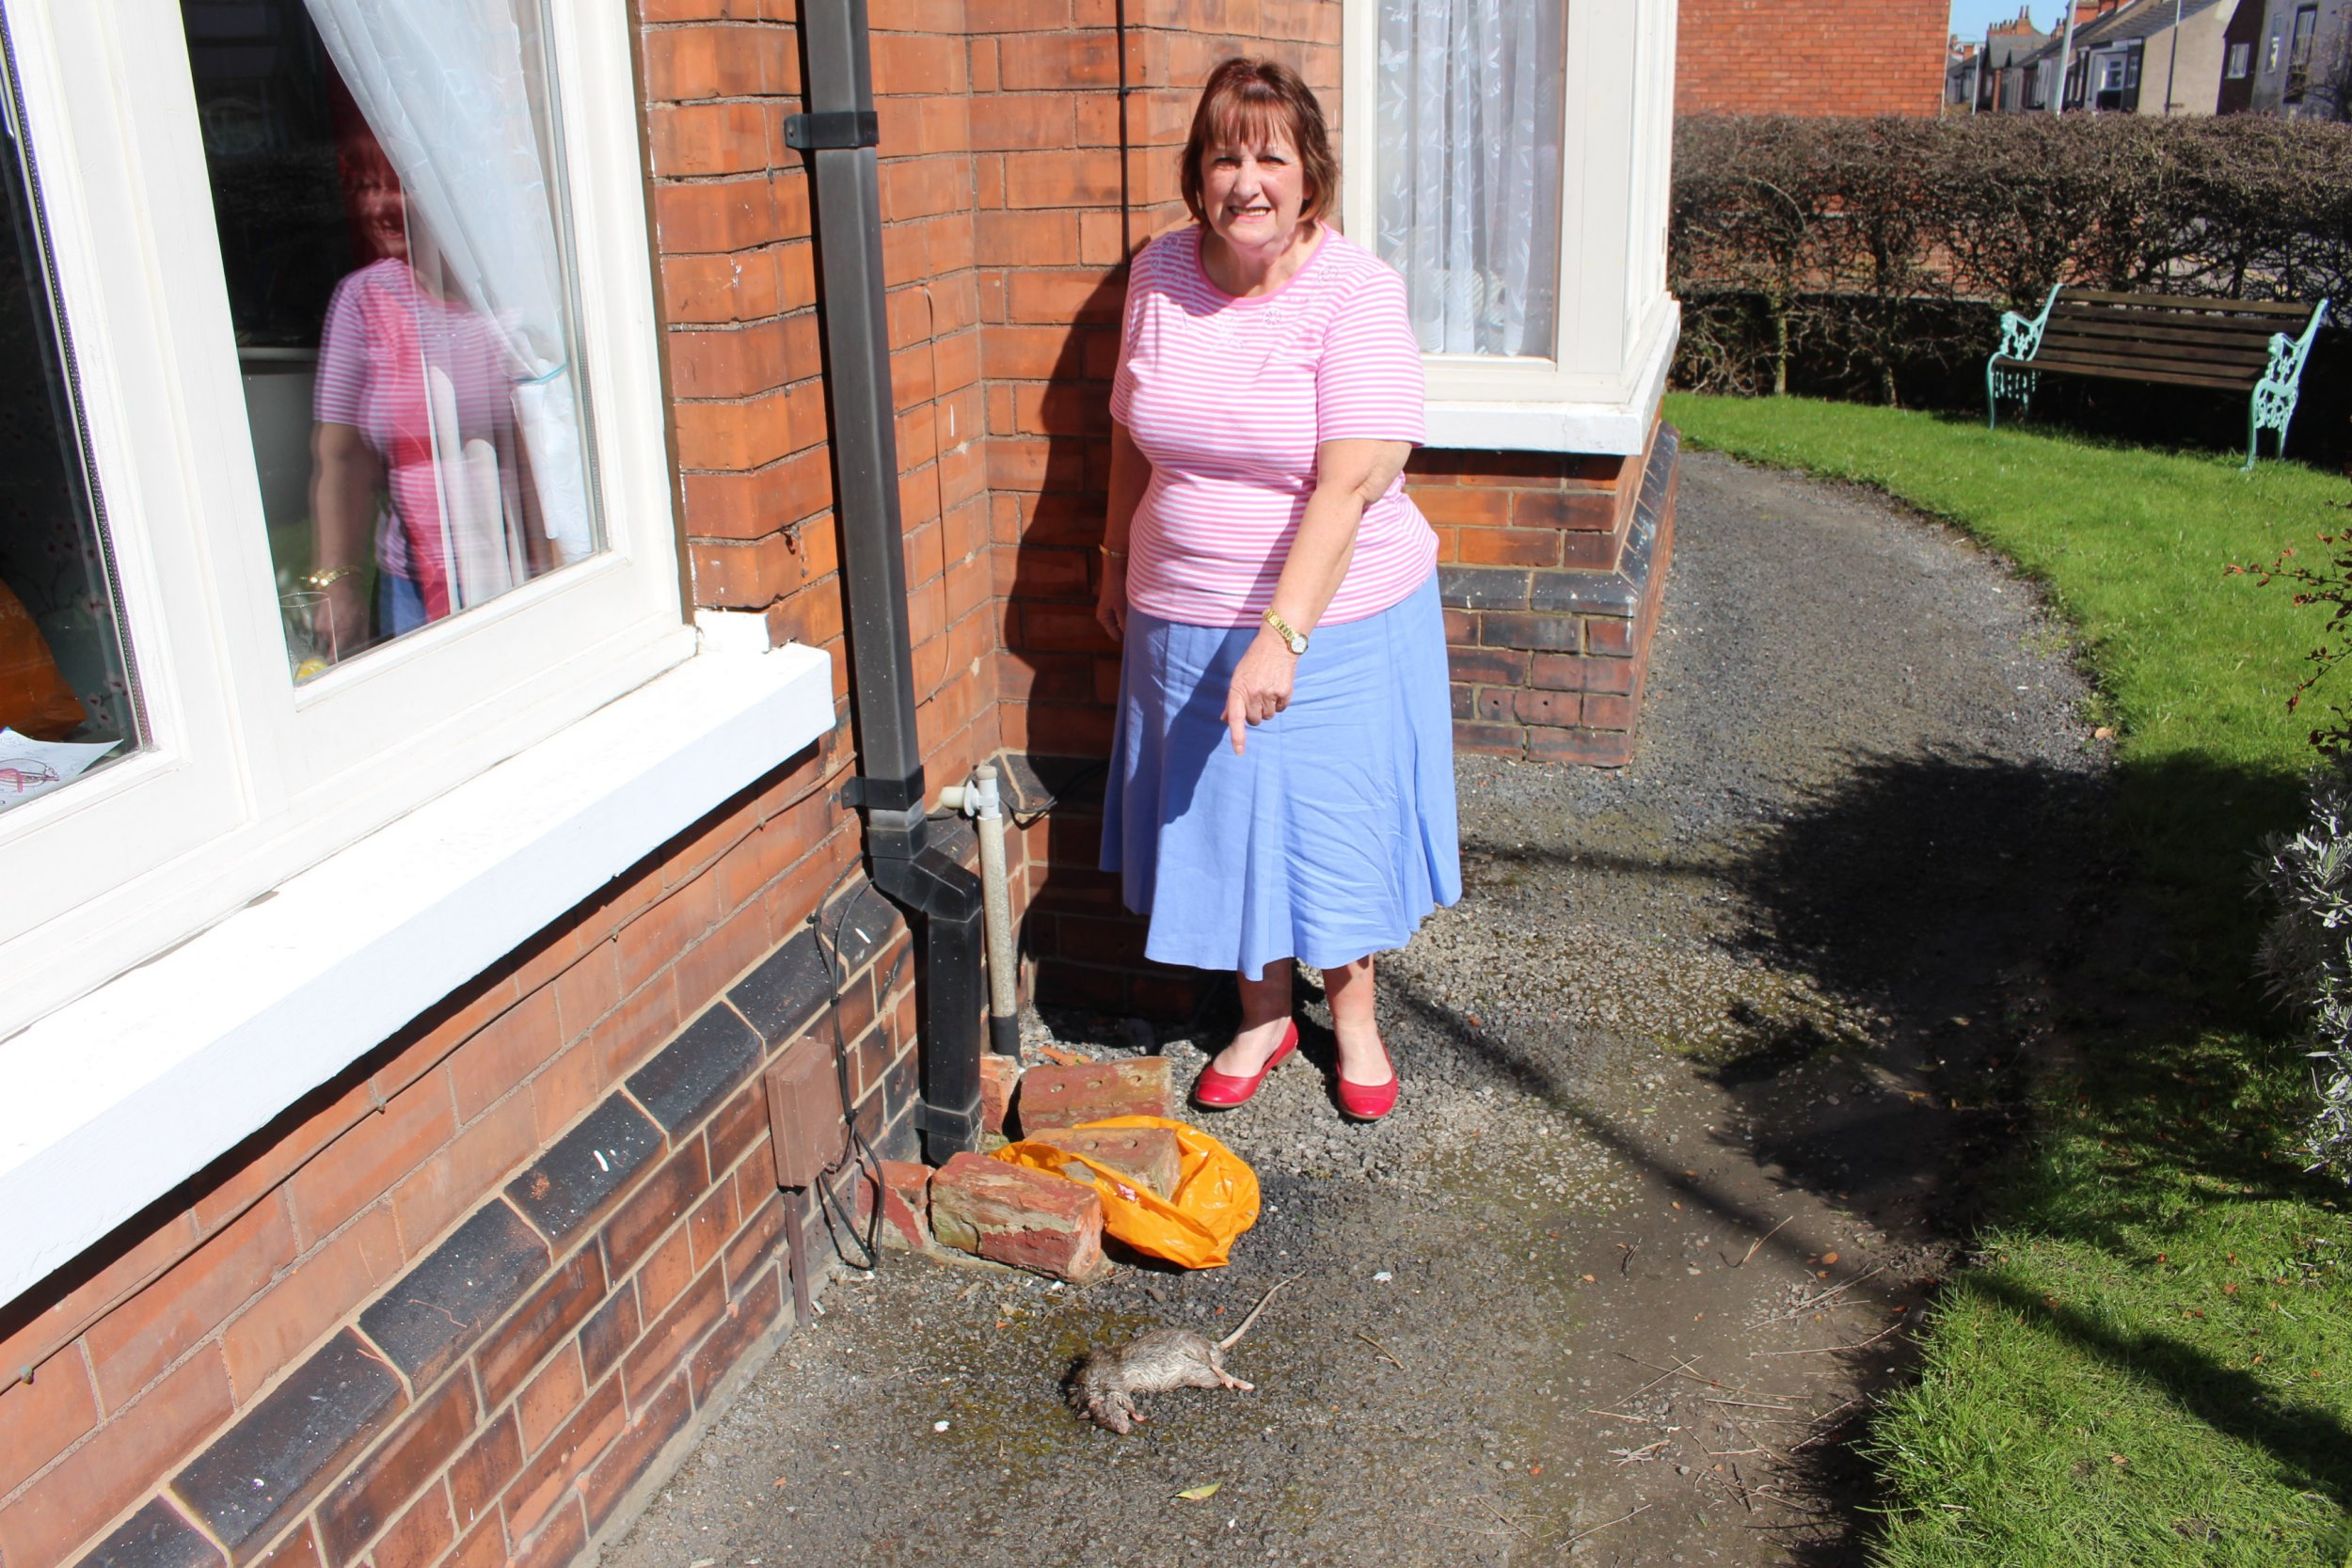 """An elderly cancer survivor has spoken of her disgust after her housing provider told her to """"clean up a dead rat herself"""" after she found one below her windowsill. Ms Madin, of Mill Road, in Cleethorpes, woke to find a huge dead rat located under the windowsill of her home. The 70 year old grandmother, who has just recently recovered from breast and lung cancer, says that she would in no way be able to do it herself, as she does not want to risk going near rat because her immune system is still very poor after her treatment. What outraged her though was whenever she rang her housing provider, Longhurst and Havelock, to ask if they would be able to get someone round to remove the dead animal, she was told over the phone that she would have to remove it herself and put it in the bin."""